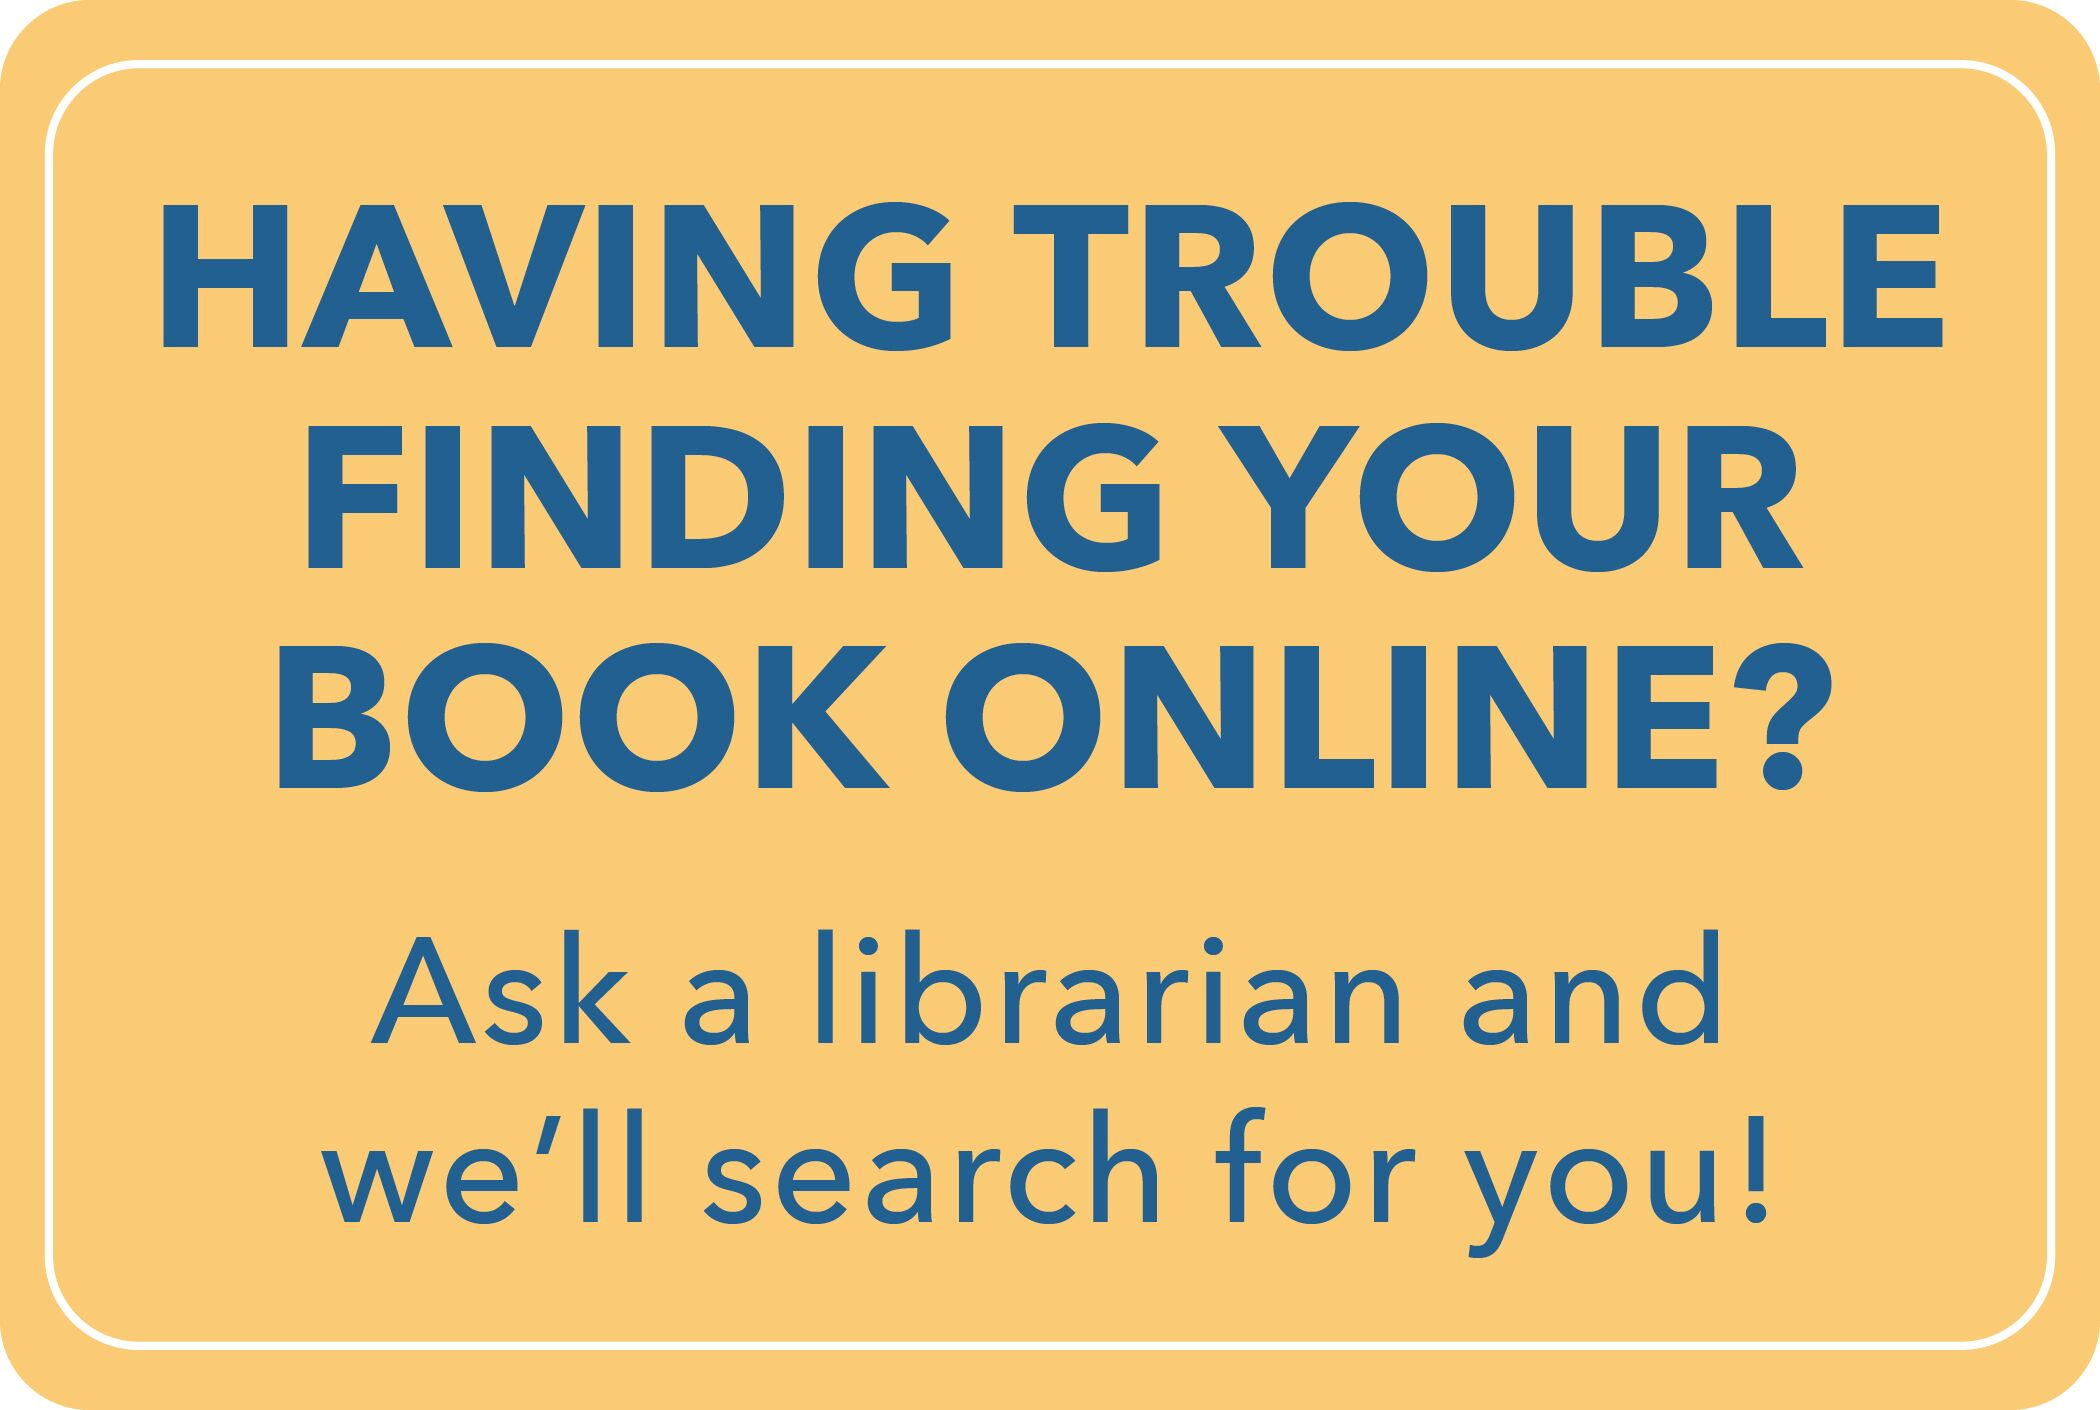 Having trouble finding your books online? Ask a librarian and we'll search for you!